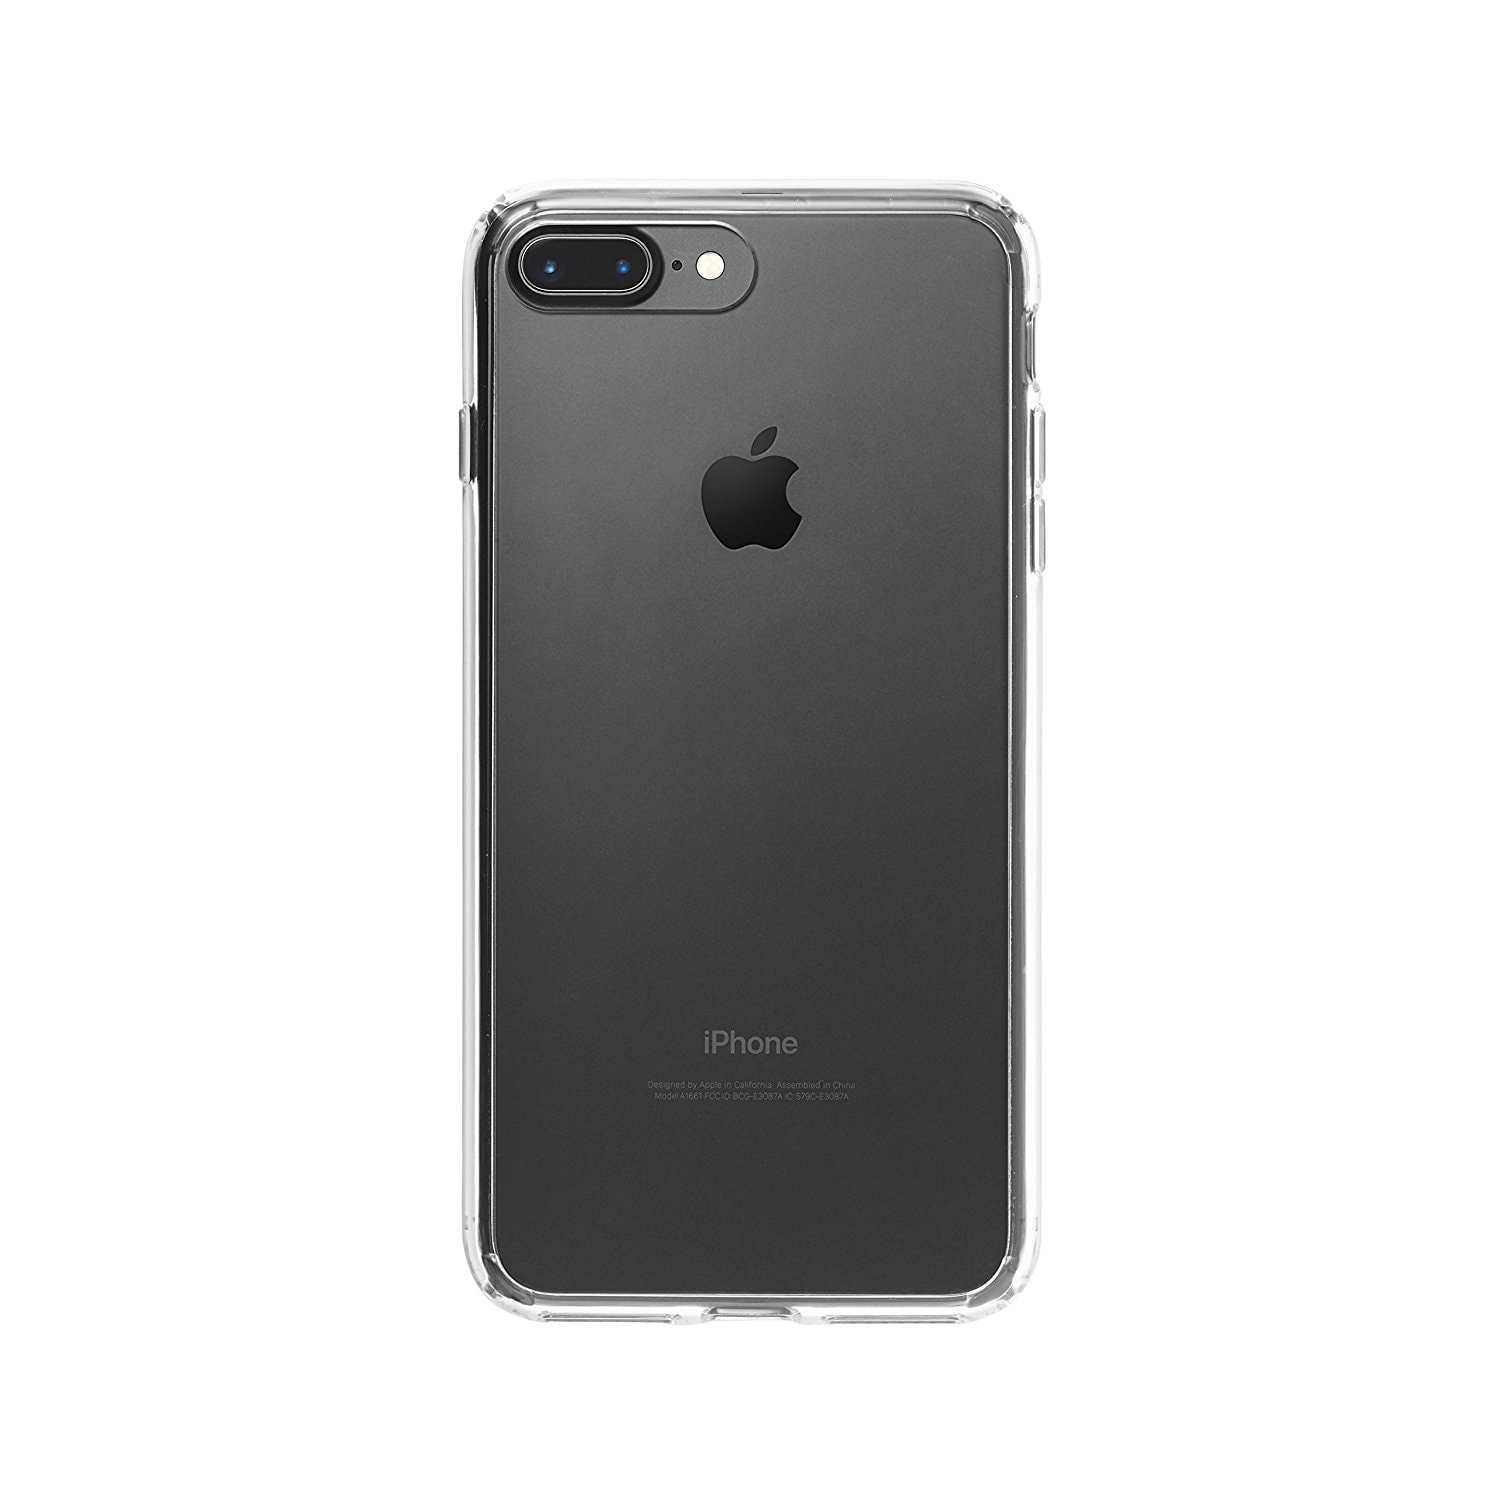 Apple iPhone 7 Plus Verizon - Refurbished by Overstock 256 GB - White and Silver - Verizon